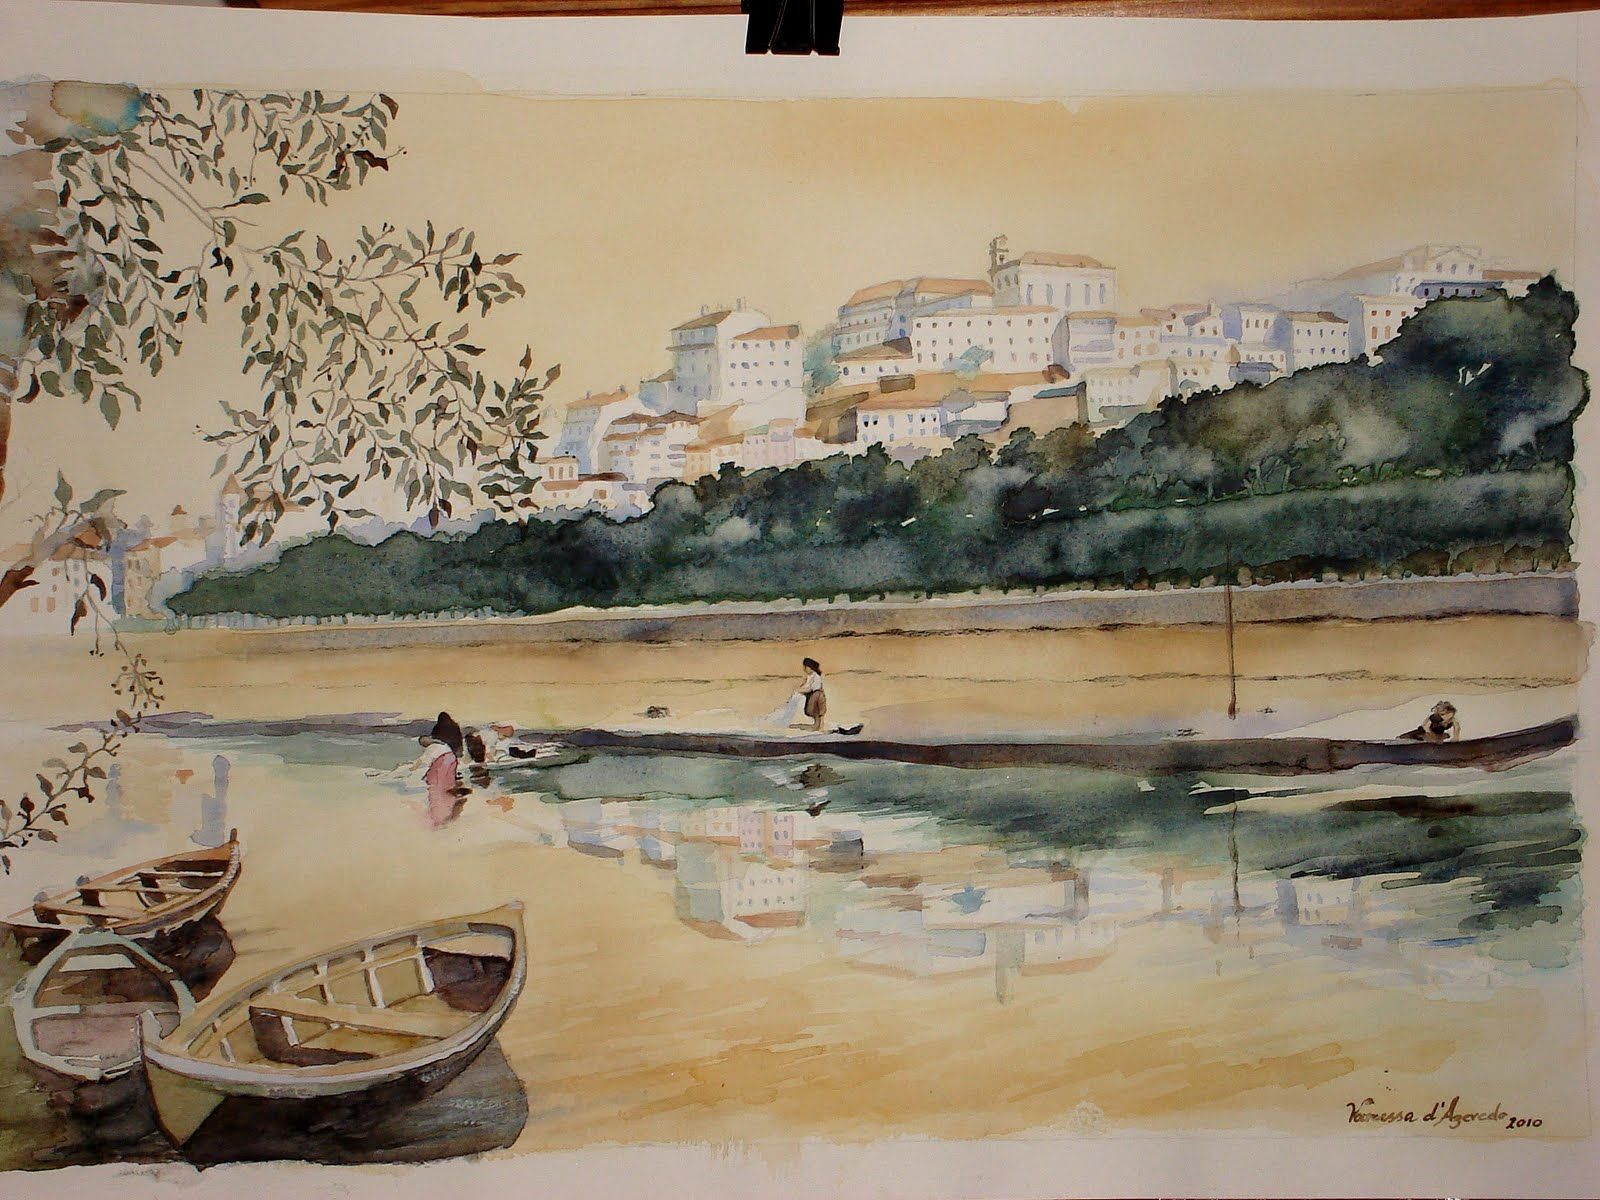 View of the city of Coimbra in the old days, watercolour by Vanessa Azevedo